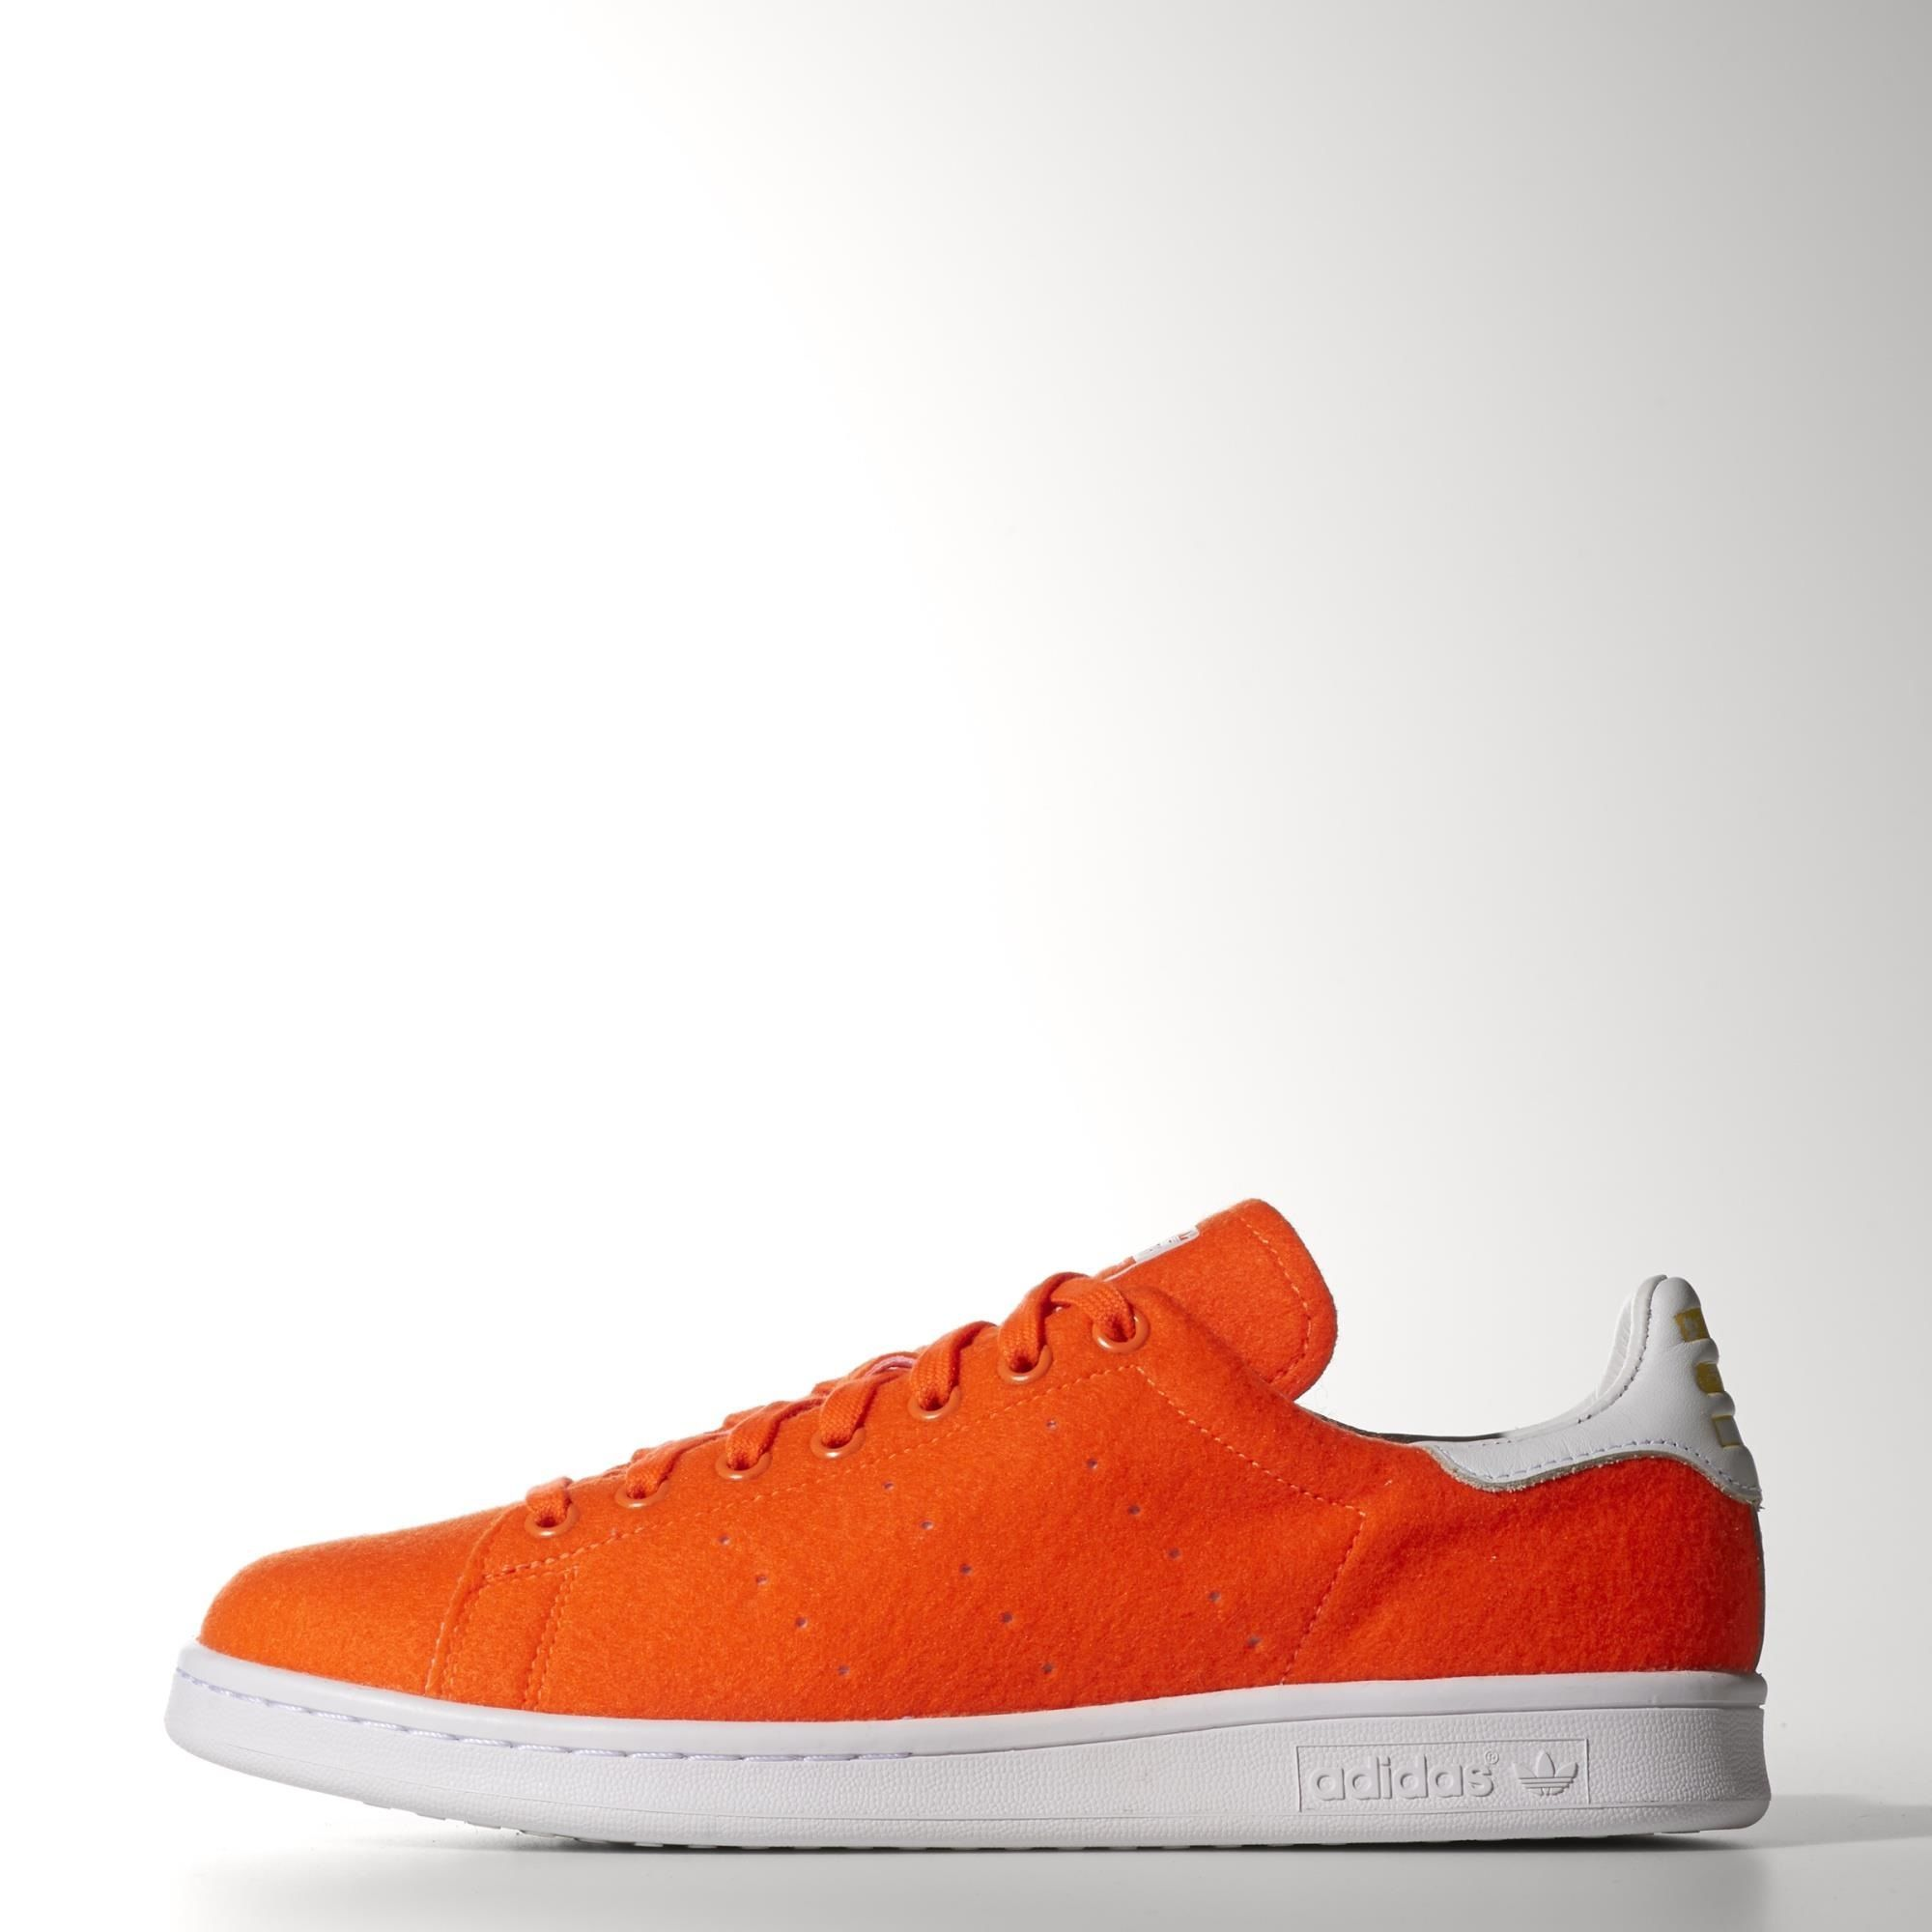 Pharrell Tennis Shoes | adidas US